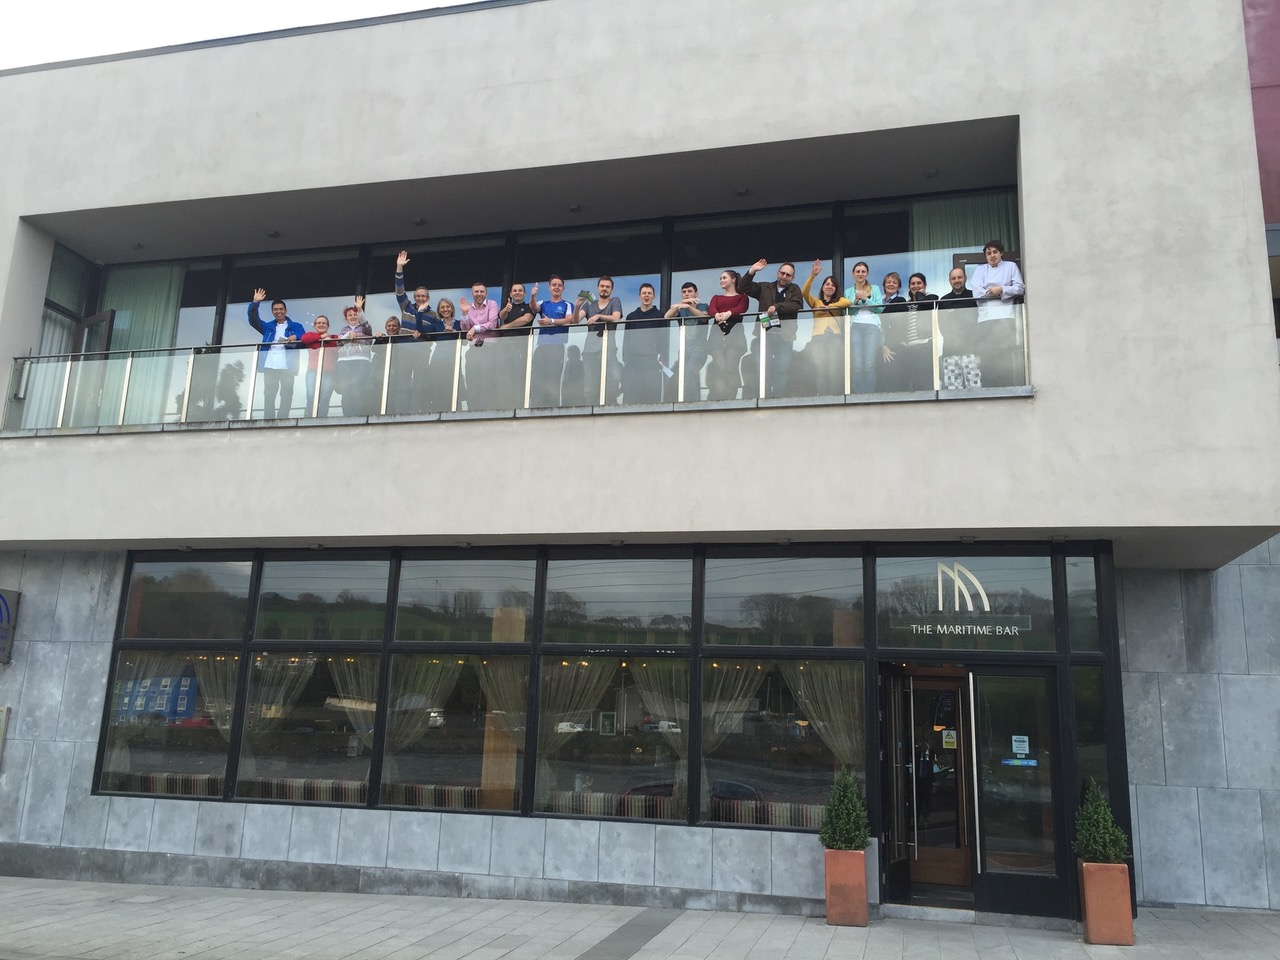 Staff trainees of the Quality Programme, waving on balcony, Maritime Hotel, Bantry, Ireland